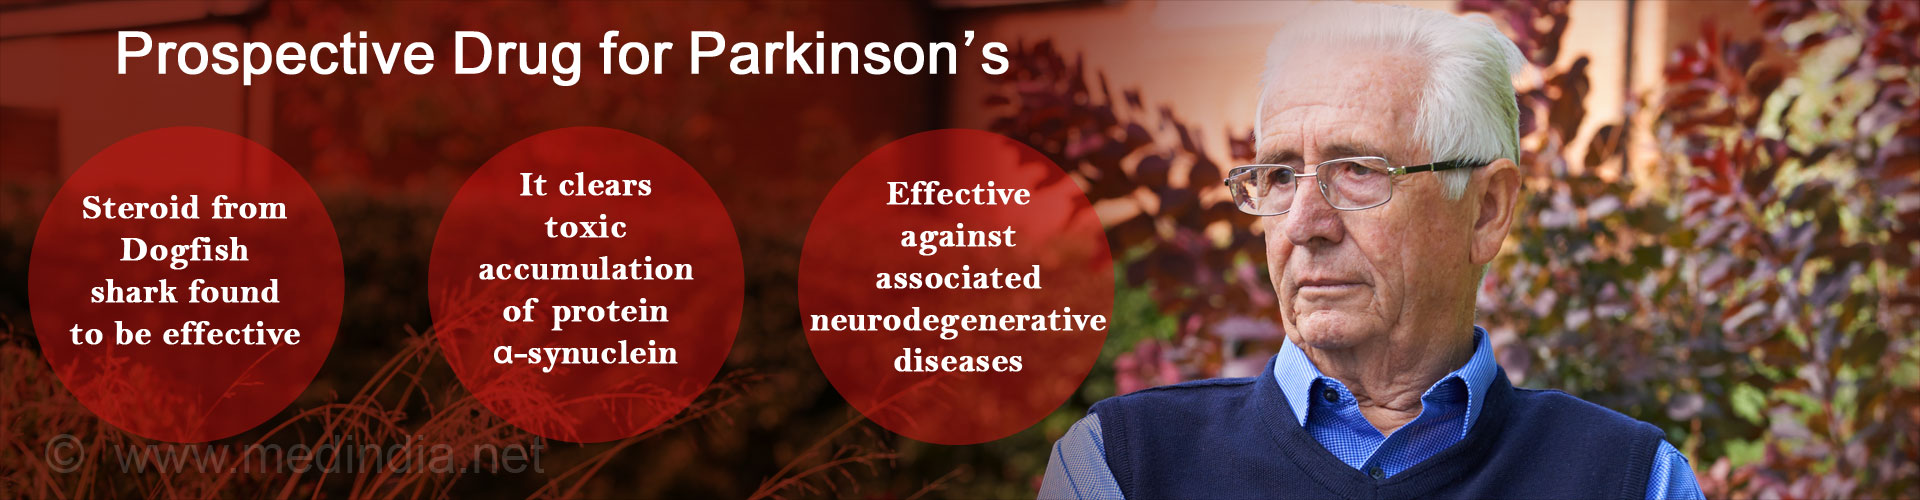 Toxic Protein in Parkinson's Disease Patients Removed by Steroid from Dogfish Shark